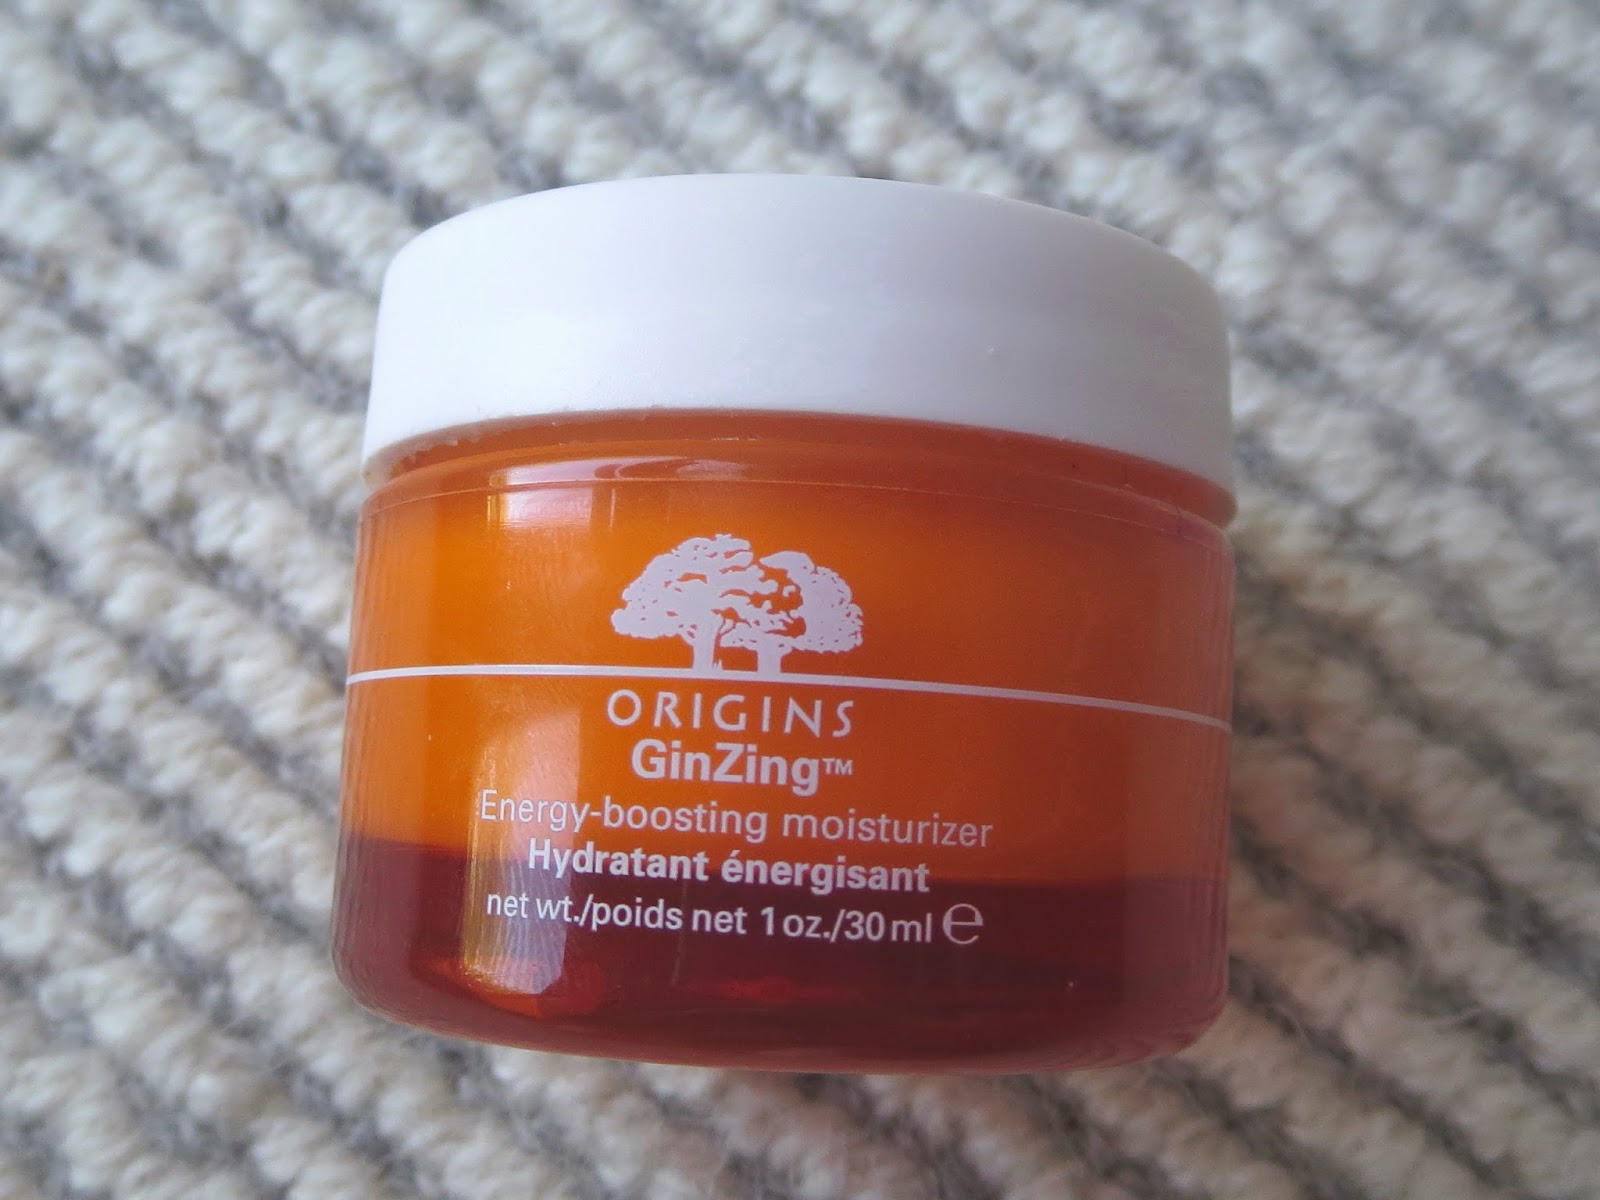 A picture of Origins' GinZing Energy-boosting moisturizer